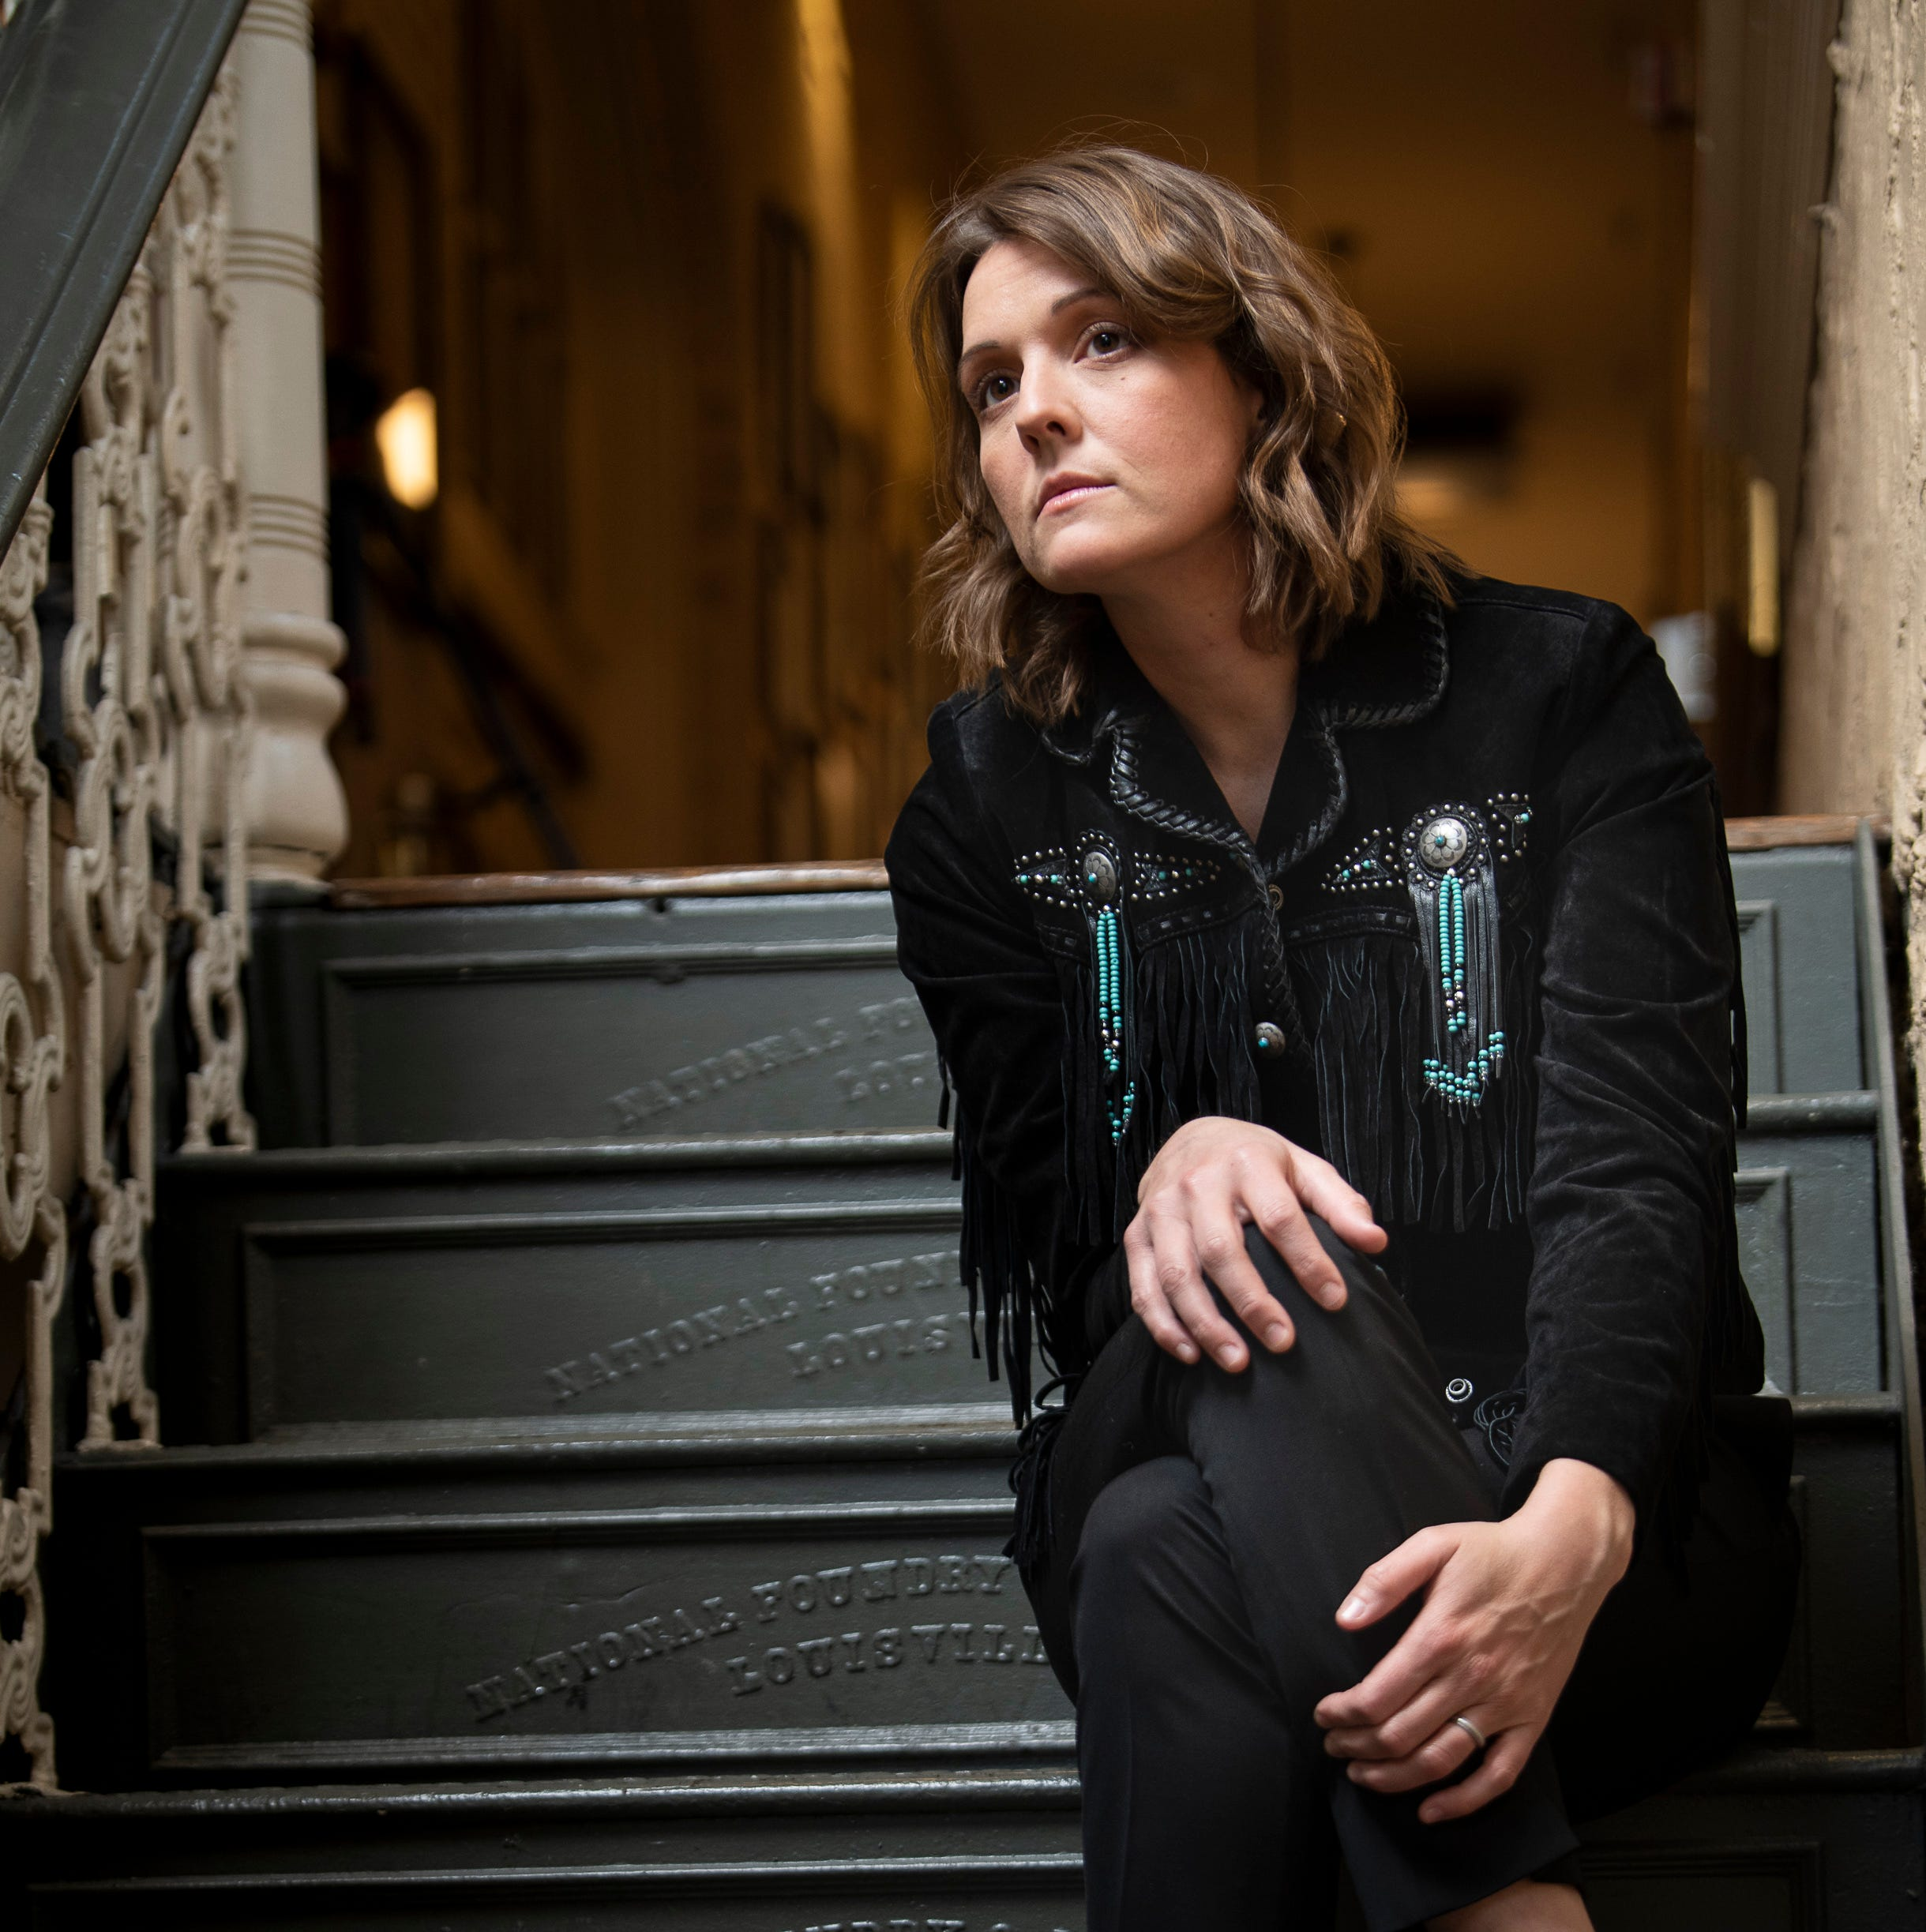 Brandi Carlile abandoned country music out of fear. Now in its embrace, 'no one has hurt me yet.'